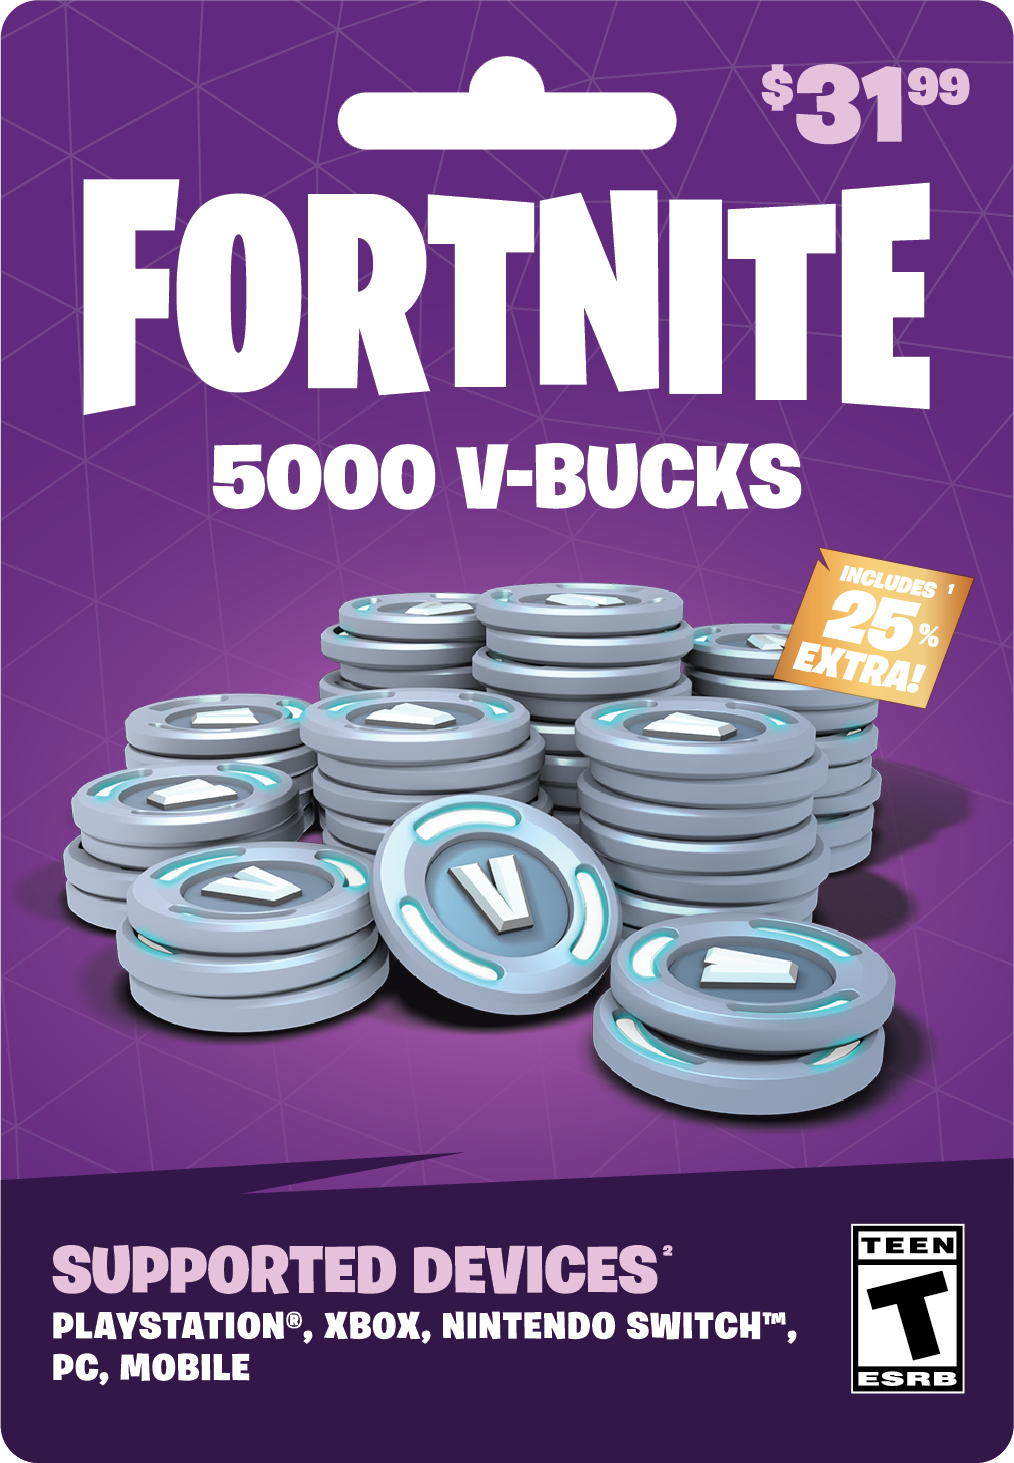 Aimbot Fortnite Pc Gratuit : aimbot, fortnite, gratuit, Fortnite, 5,000, V-Bucks,, .99, Physical, Card,, Gearbox, Walmart.com, In-game, Currency,, Currency, Generator